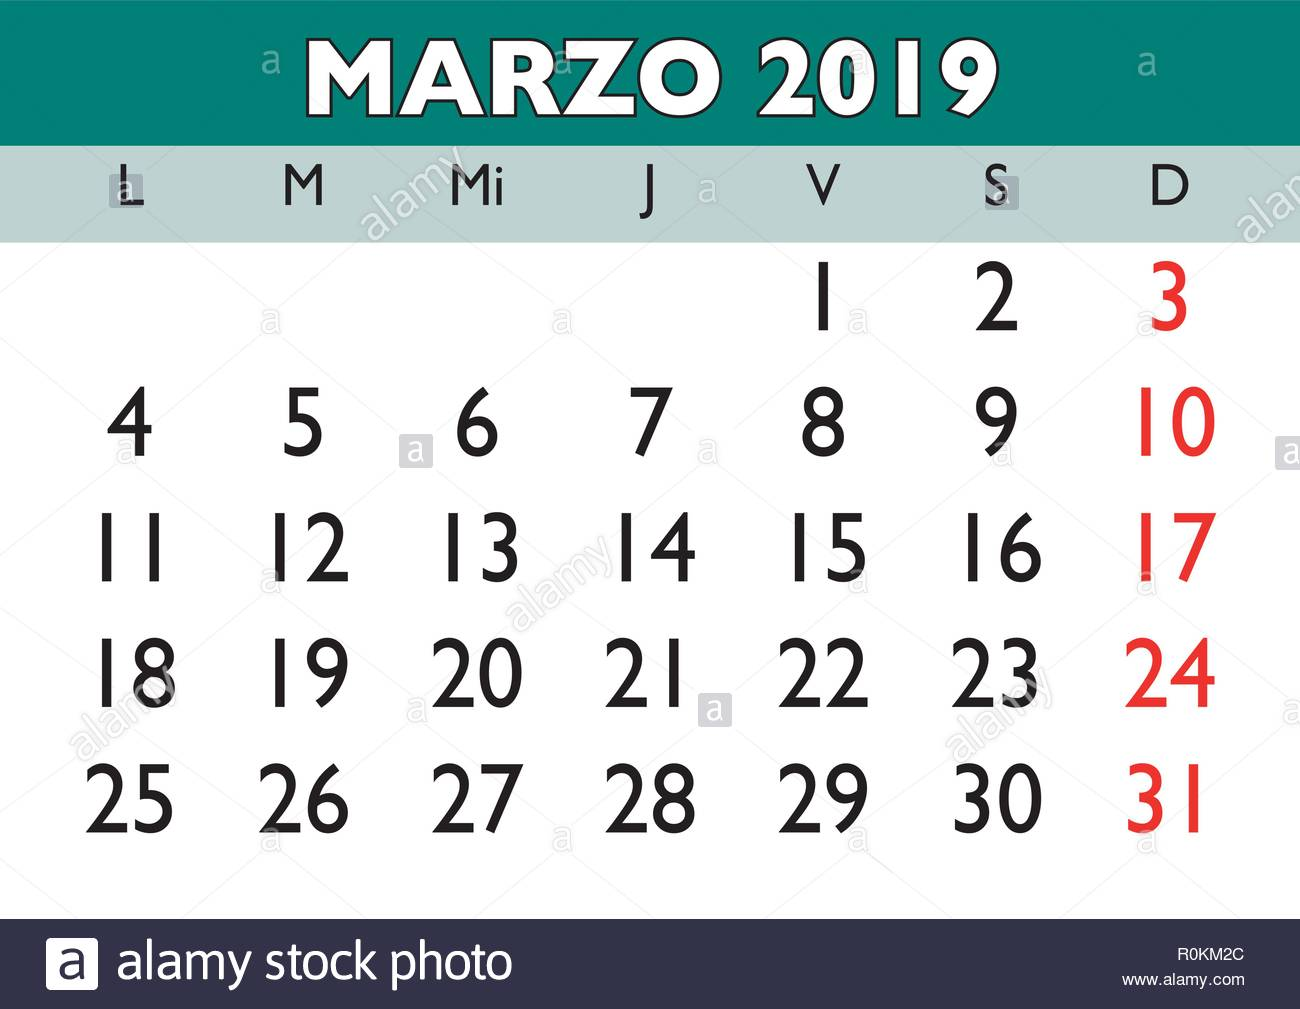 Calendario 2019.March Month In A Year 2019 Wall Calendar In Spanish Marzo